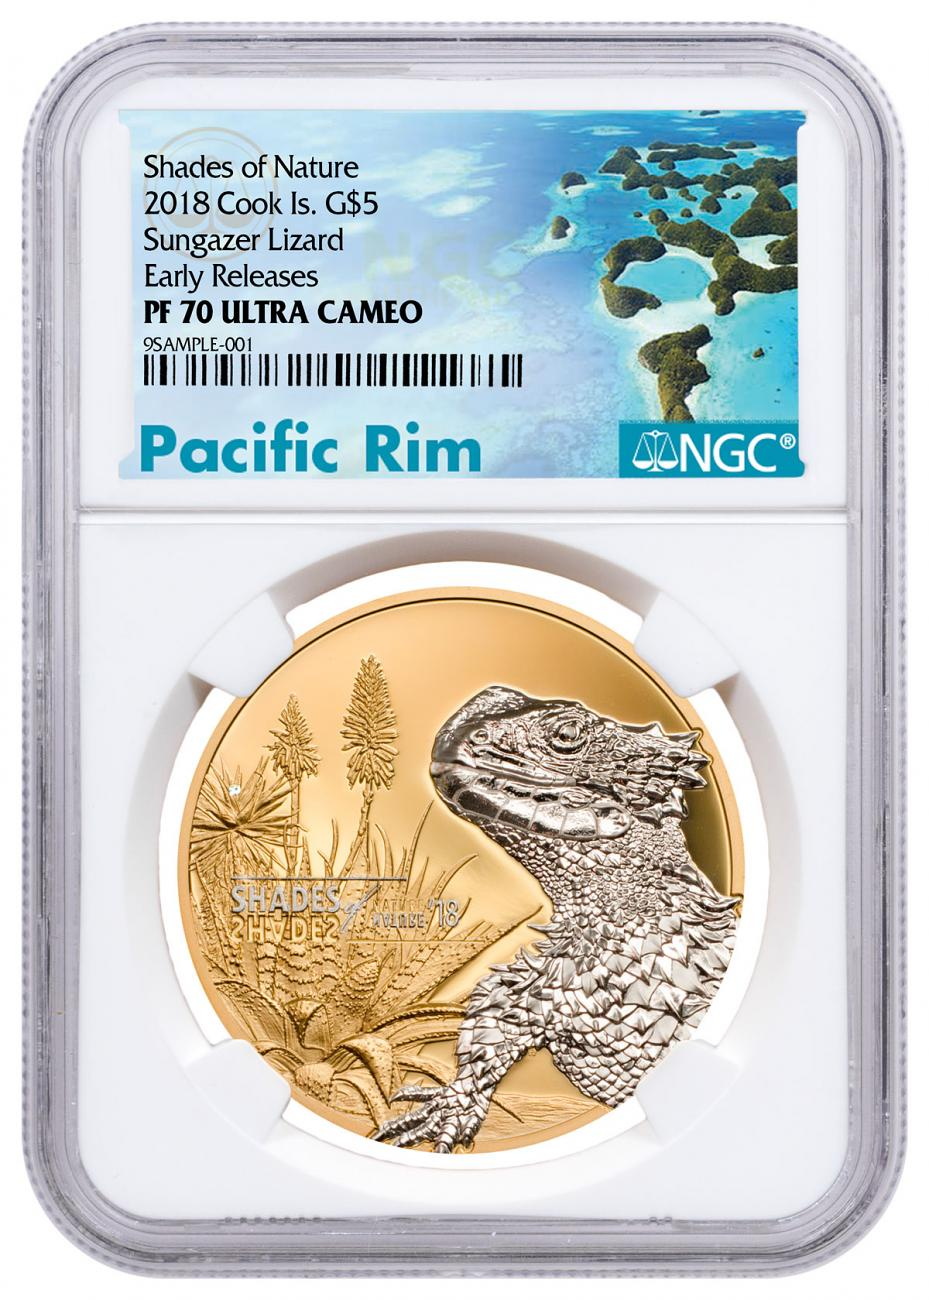 2018 Cook Islands Shades of Nature - Sungazer Lizard 1 oz Silver Gilt Proof $5 Coin NGC PF70 UC ER Exclusive Pacific Rim Label